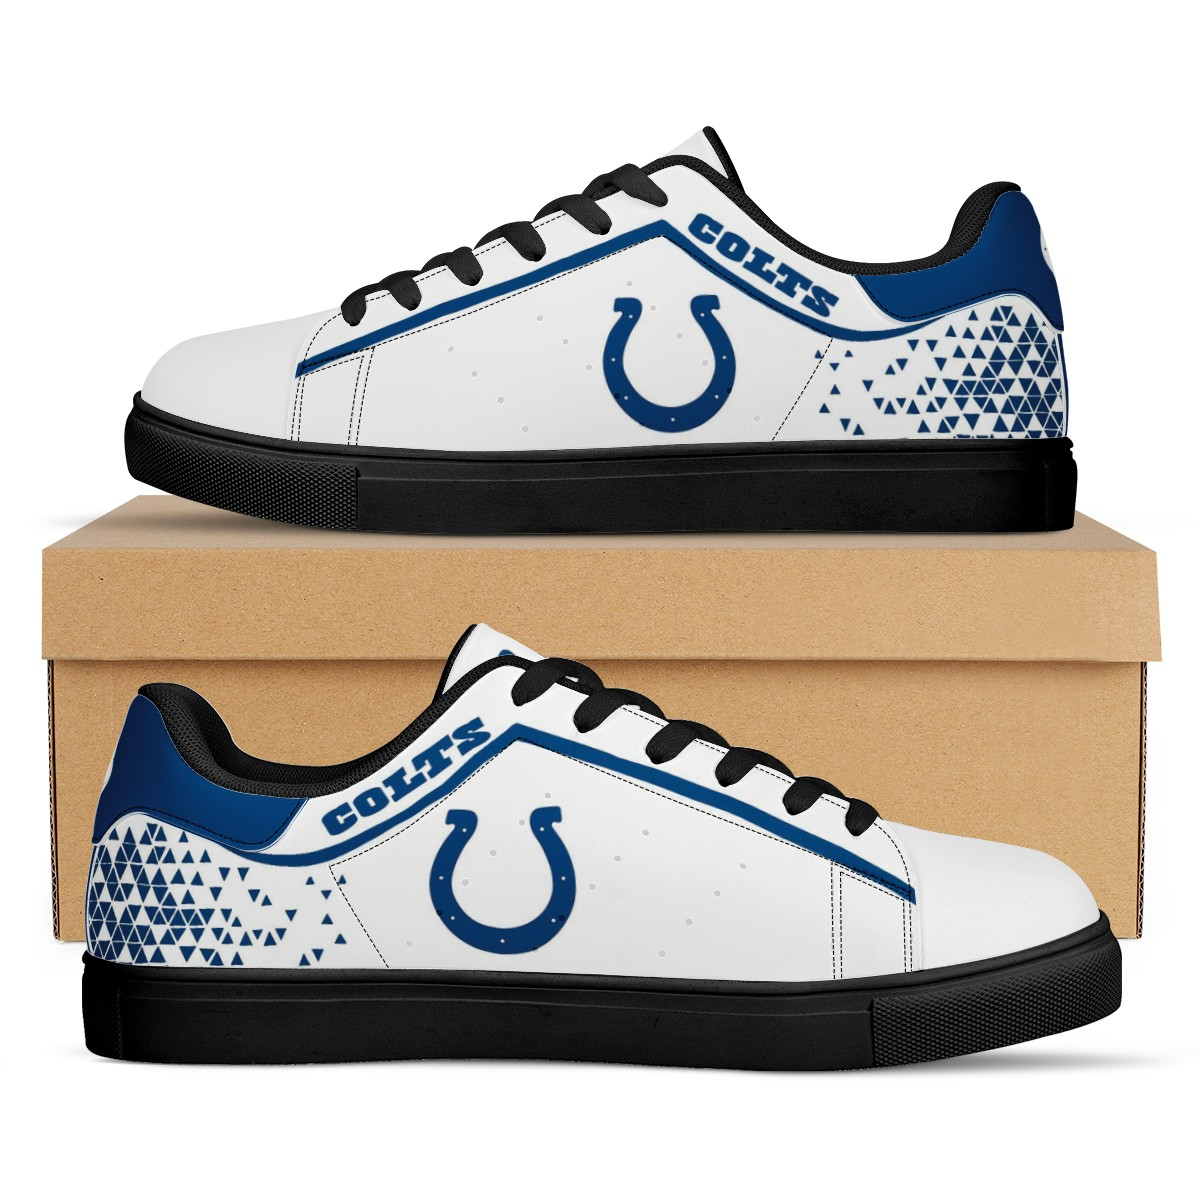 Men's Indianapolis Colts Low Top Leather Sneakers 001